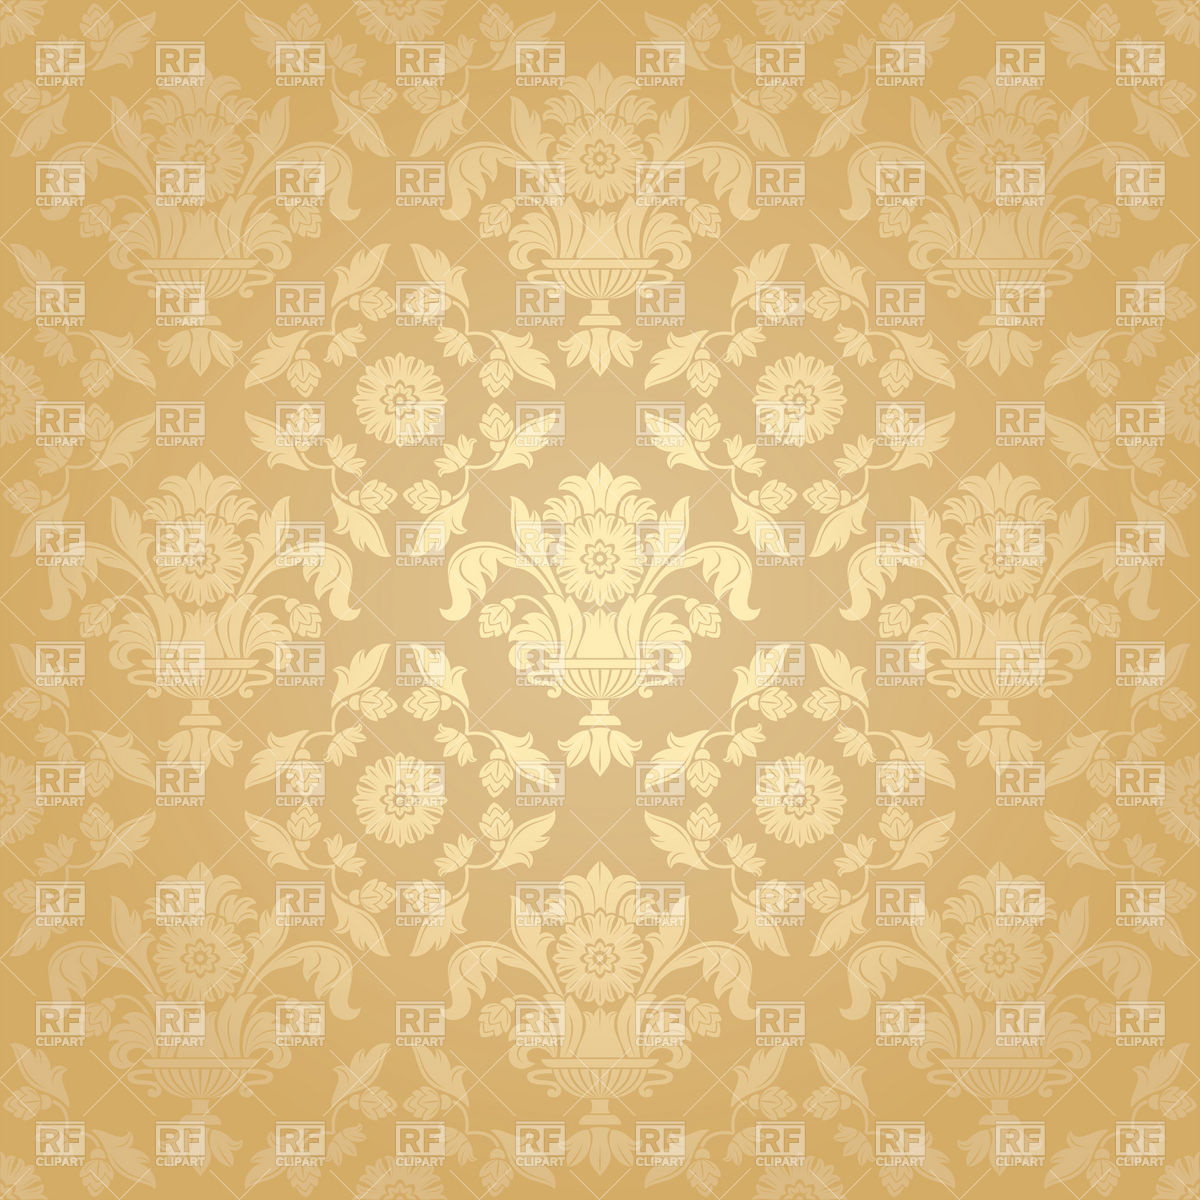 Free Download Seamless Beige Victorian Wallpaper With Floral